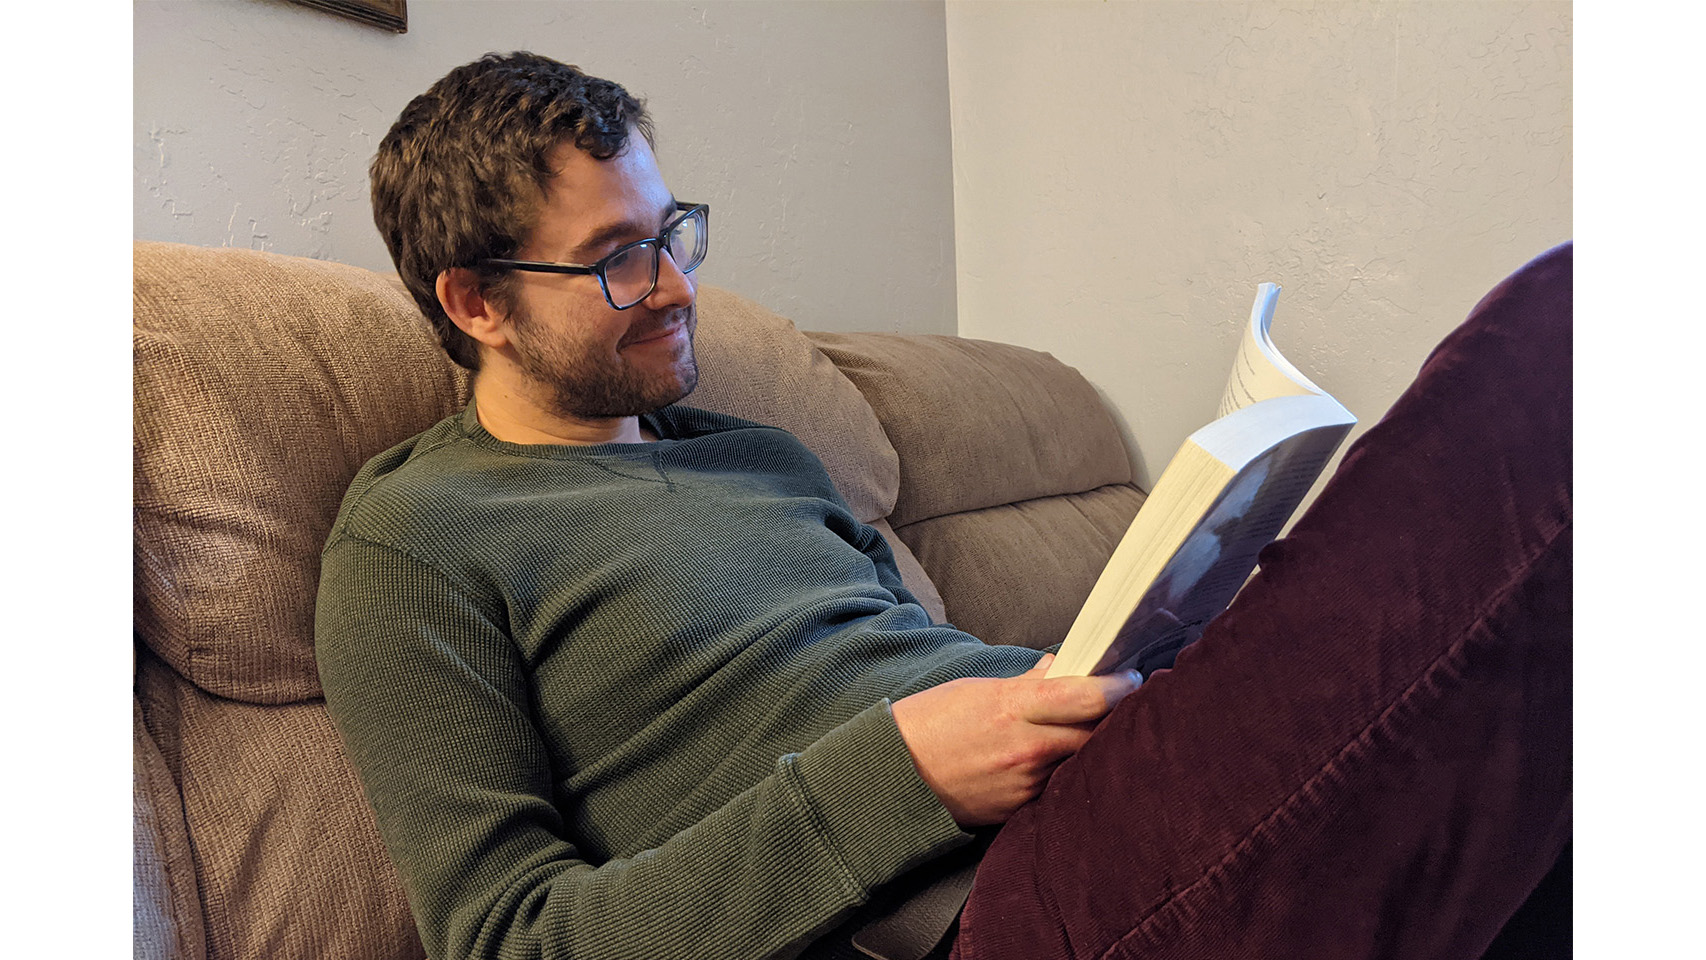 Photo of Dillon Sarb sitting on a couch and reading.